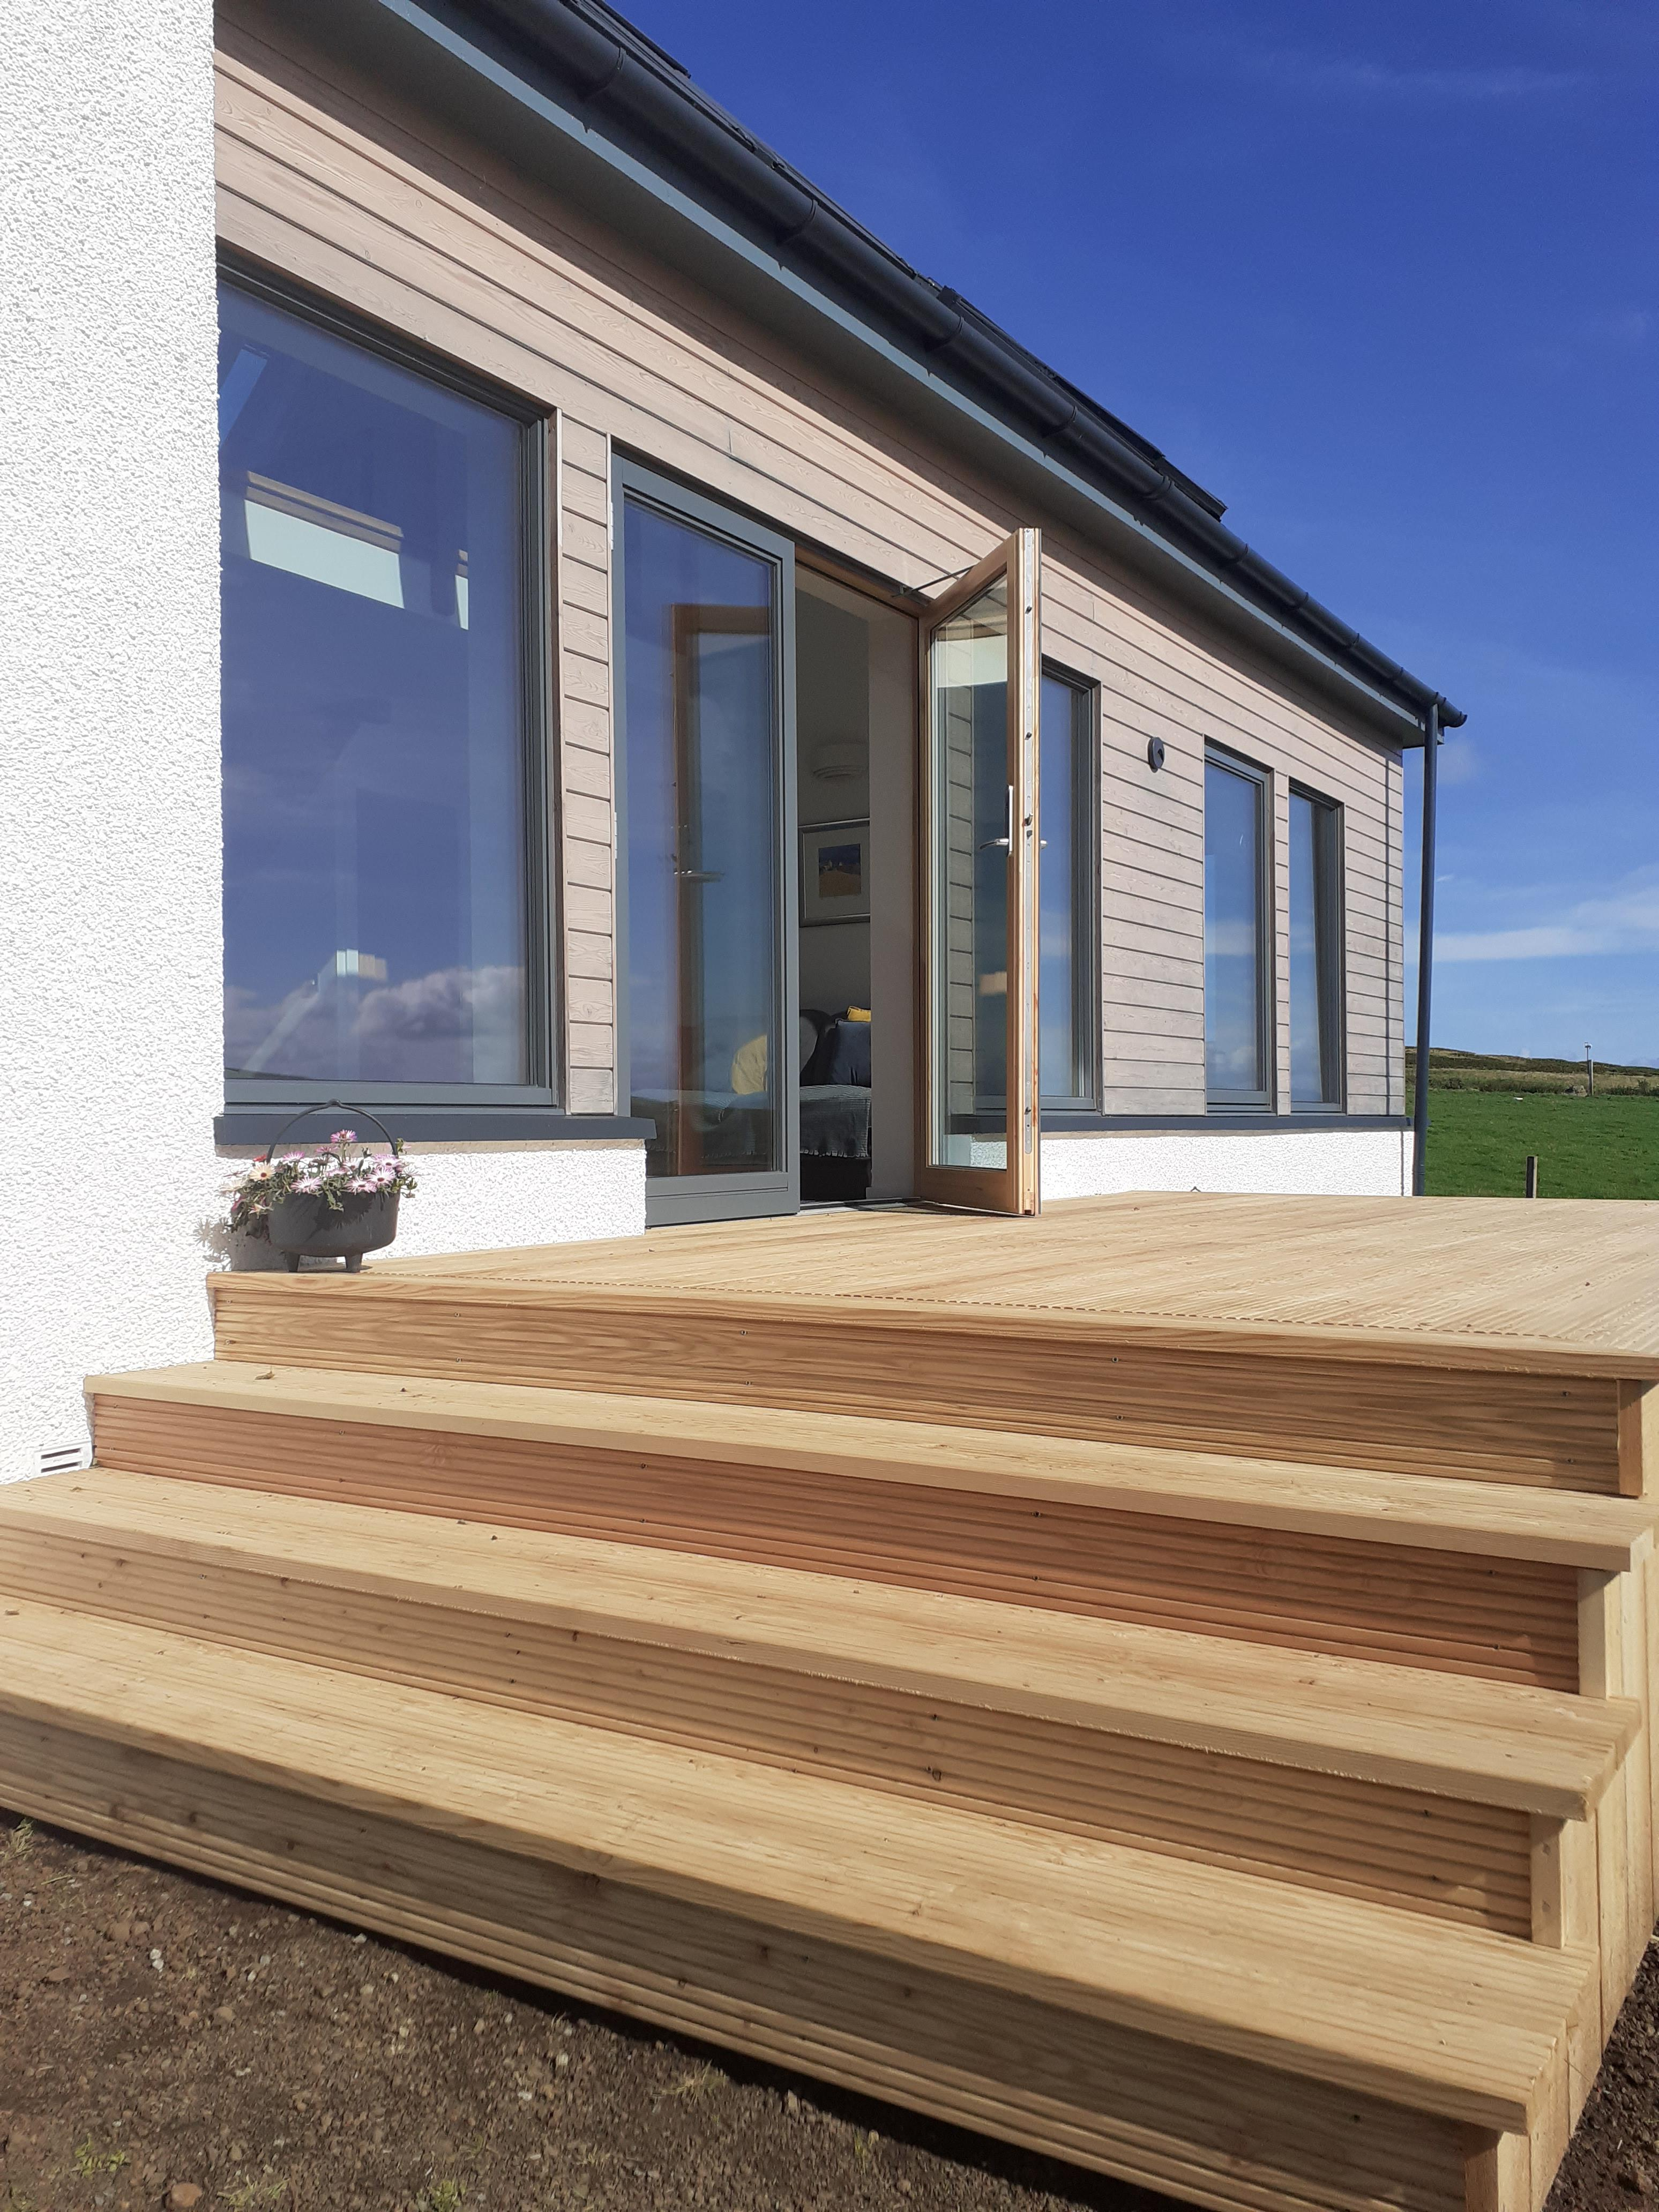 Ramp and decking